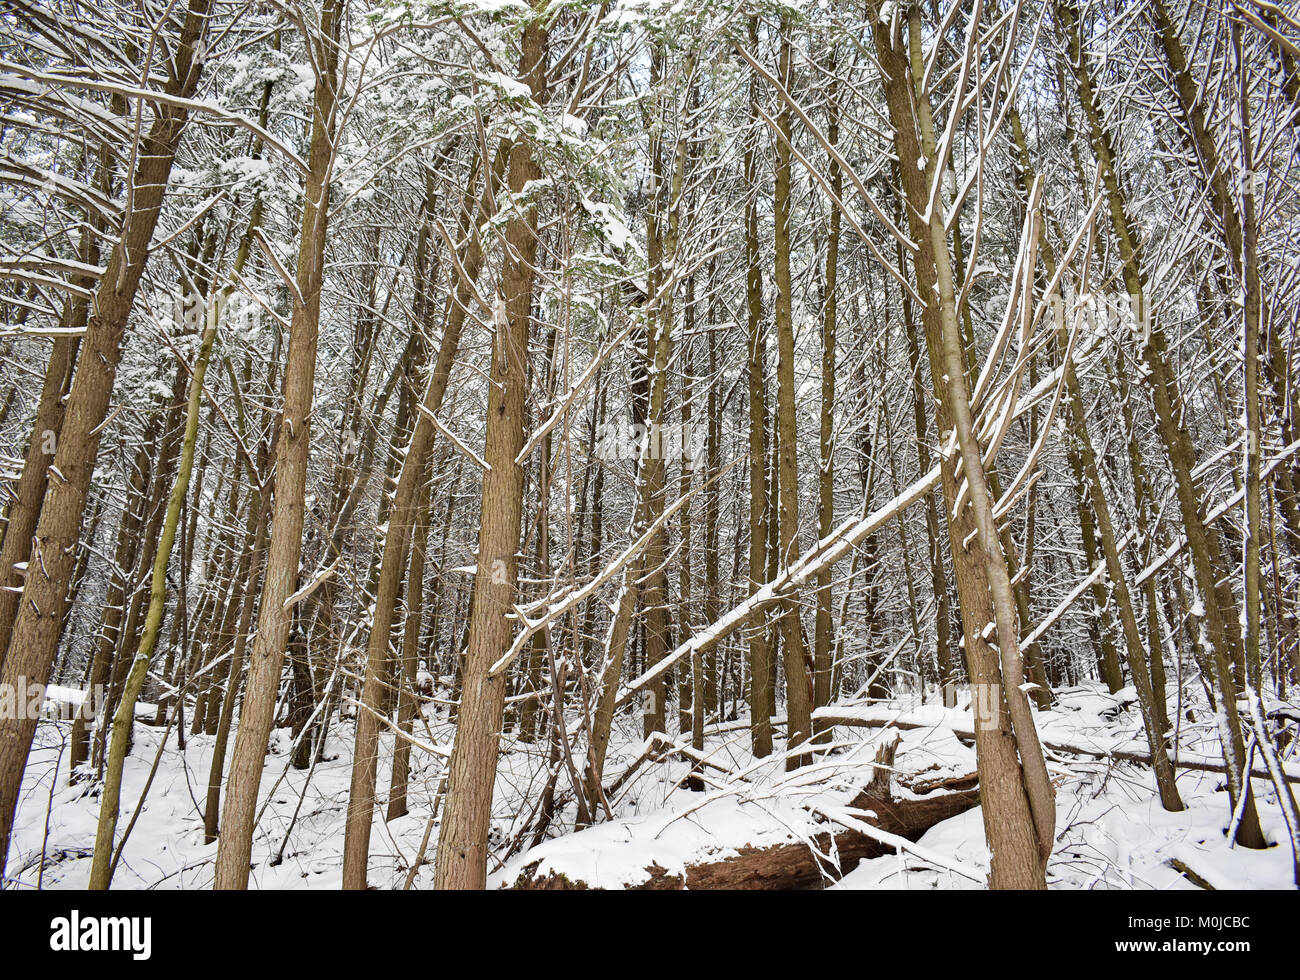 Pine grove covered in snow - Stock Image